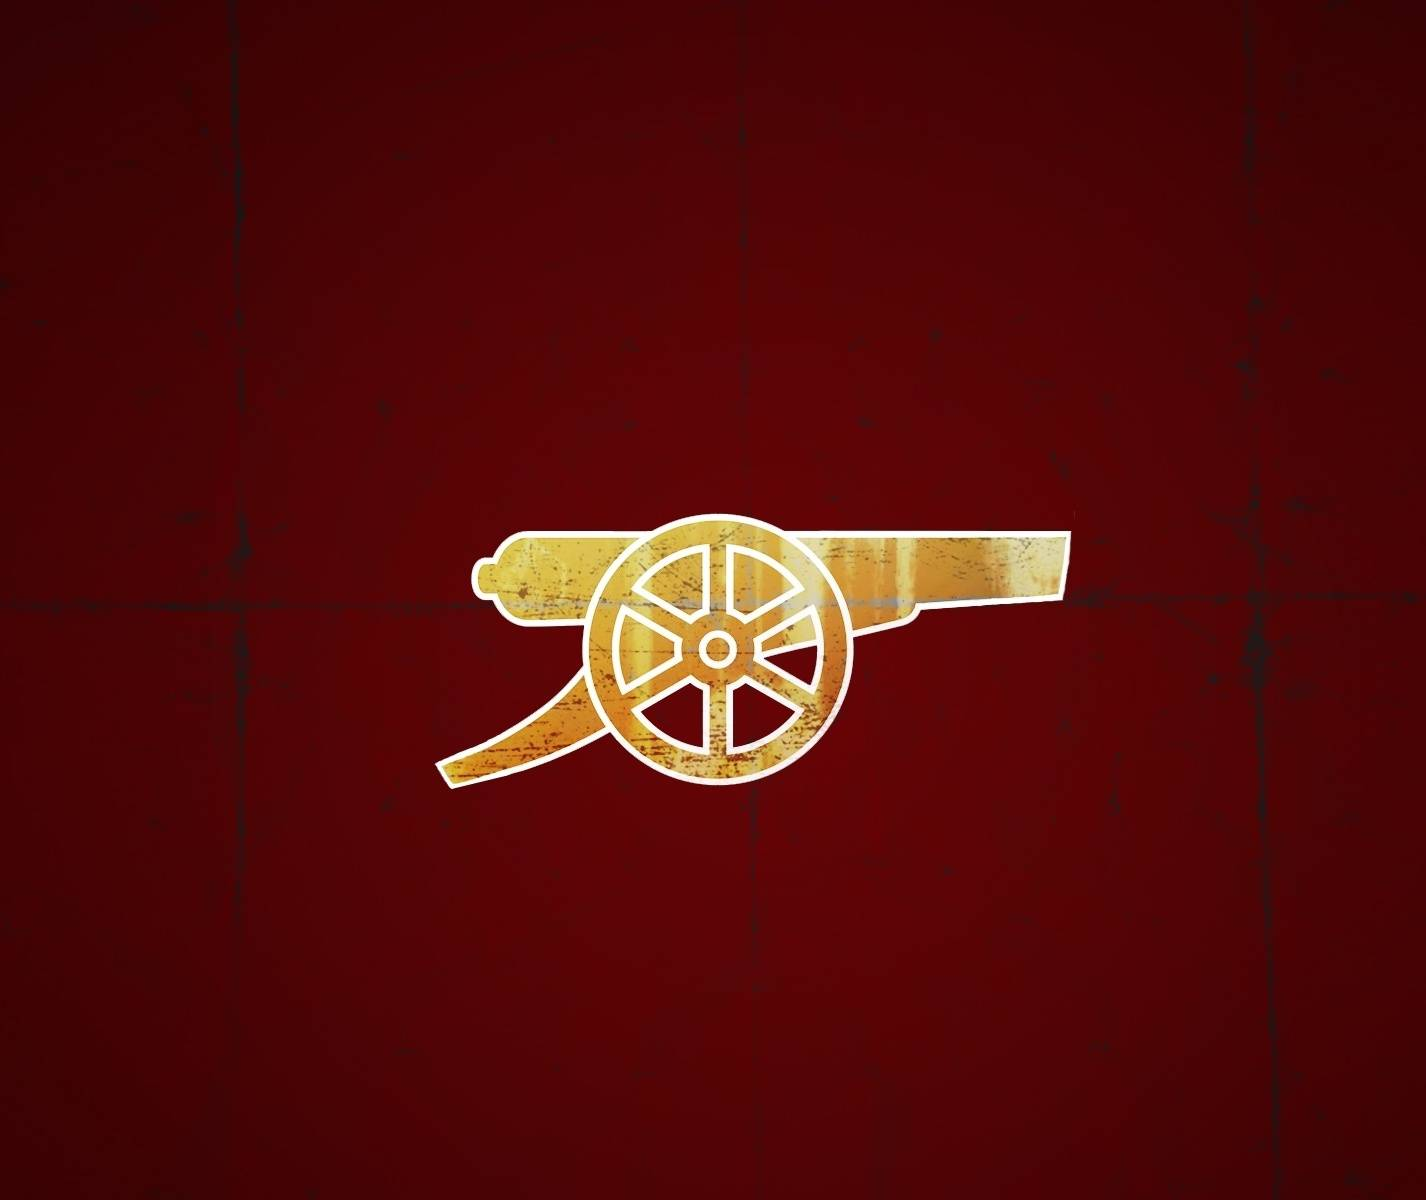 Arsenal Cannon 01 Wallpaper By Stork002